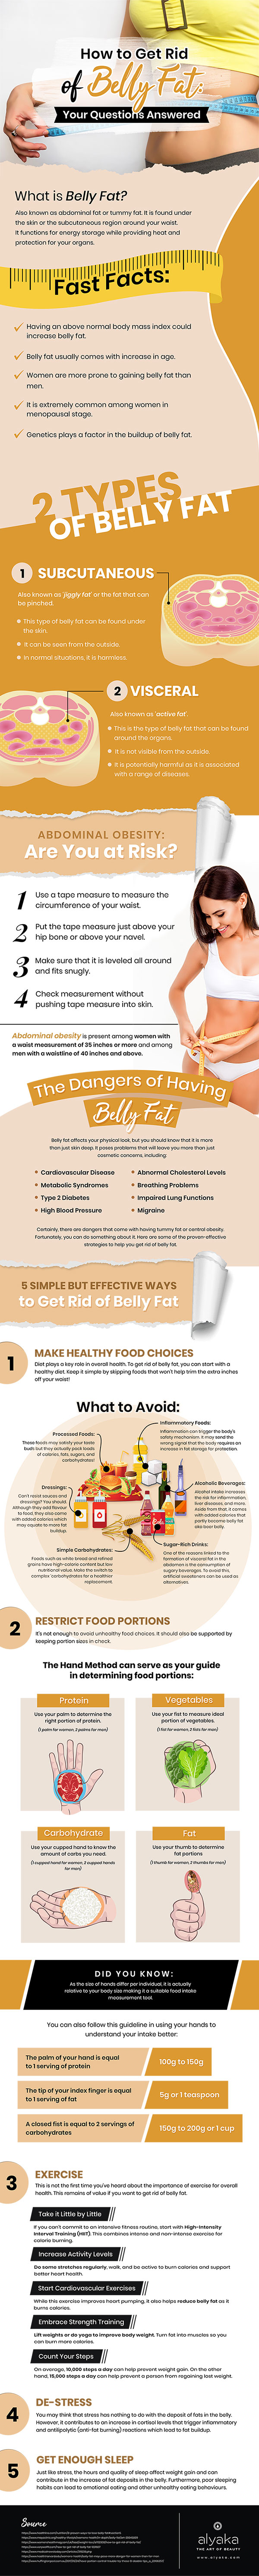 How to Get Rid of Belly Fat Infographic